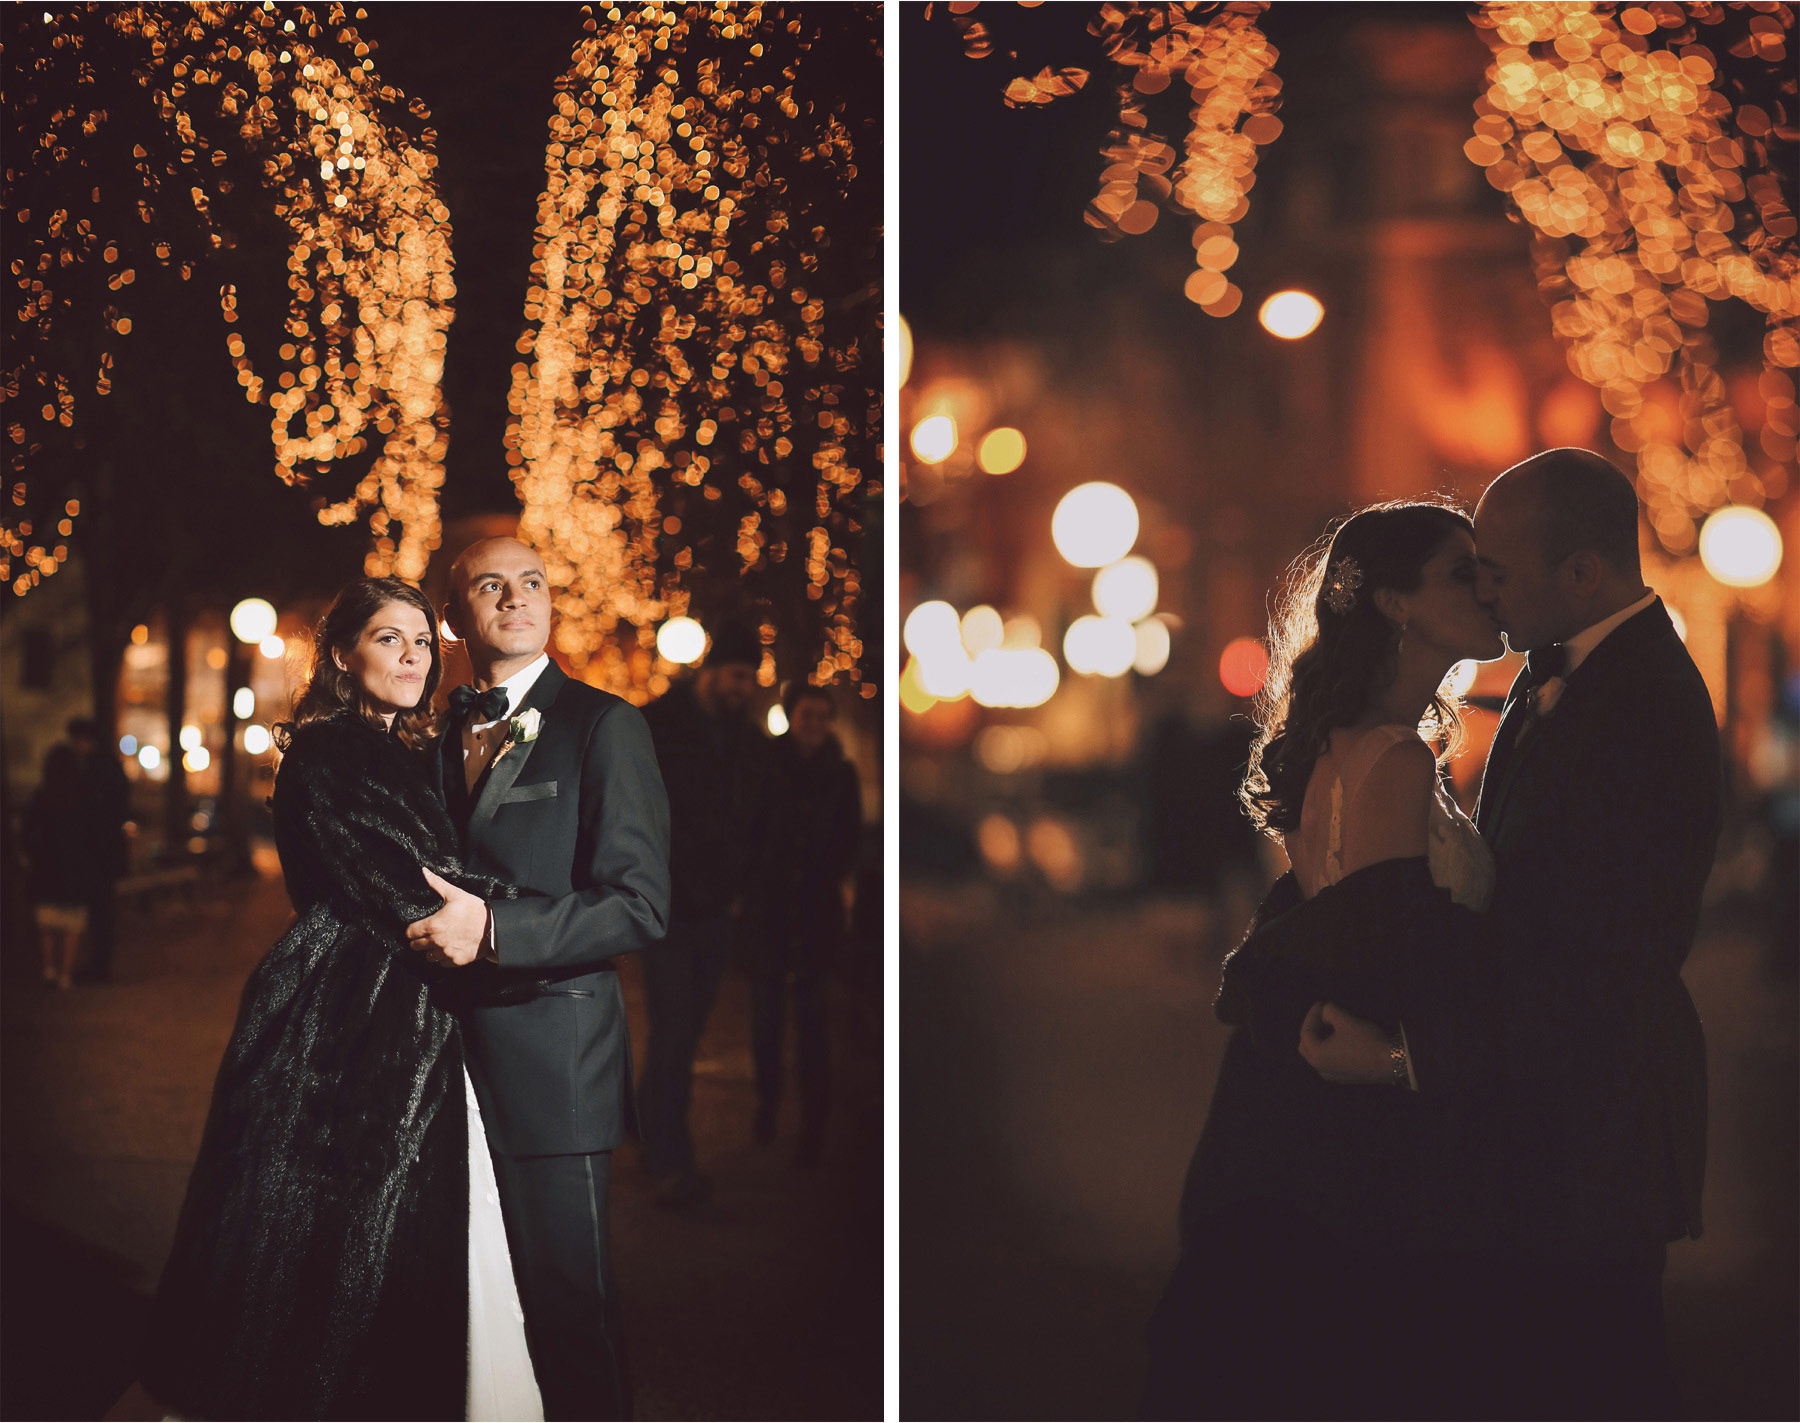 17-Saint-Paul-Minnesota-Wedding-Photographer-by-Andrew-Vick-Photography-Winter-New-Years-Eve-Landmark-Center-Bride-Groom-Kiss-Fur-Coat-Christmas-Lights-Night-Emily-and-Michael.jpg